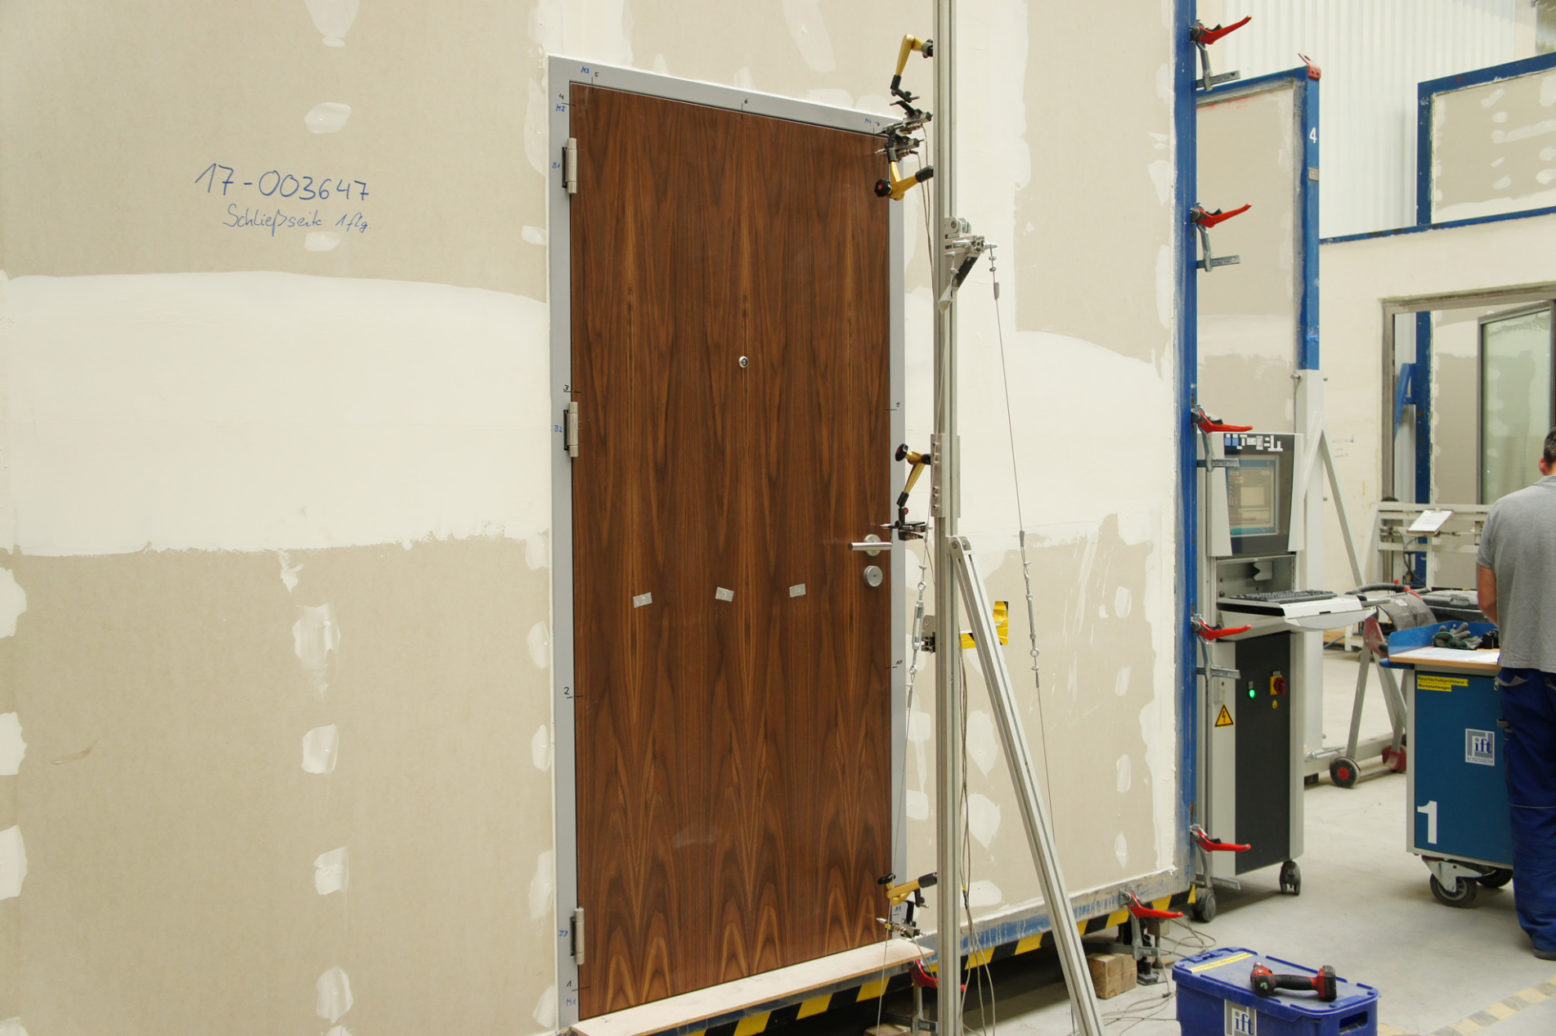 Development of new hotel doors